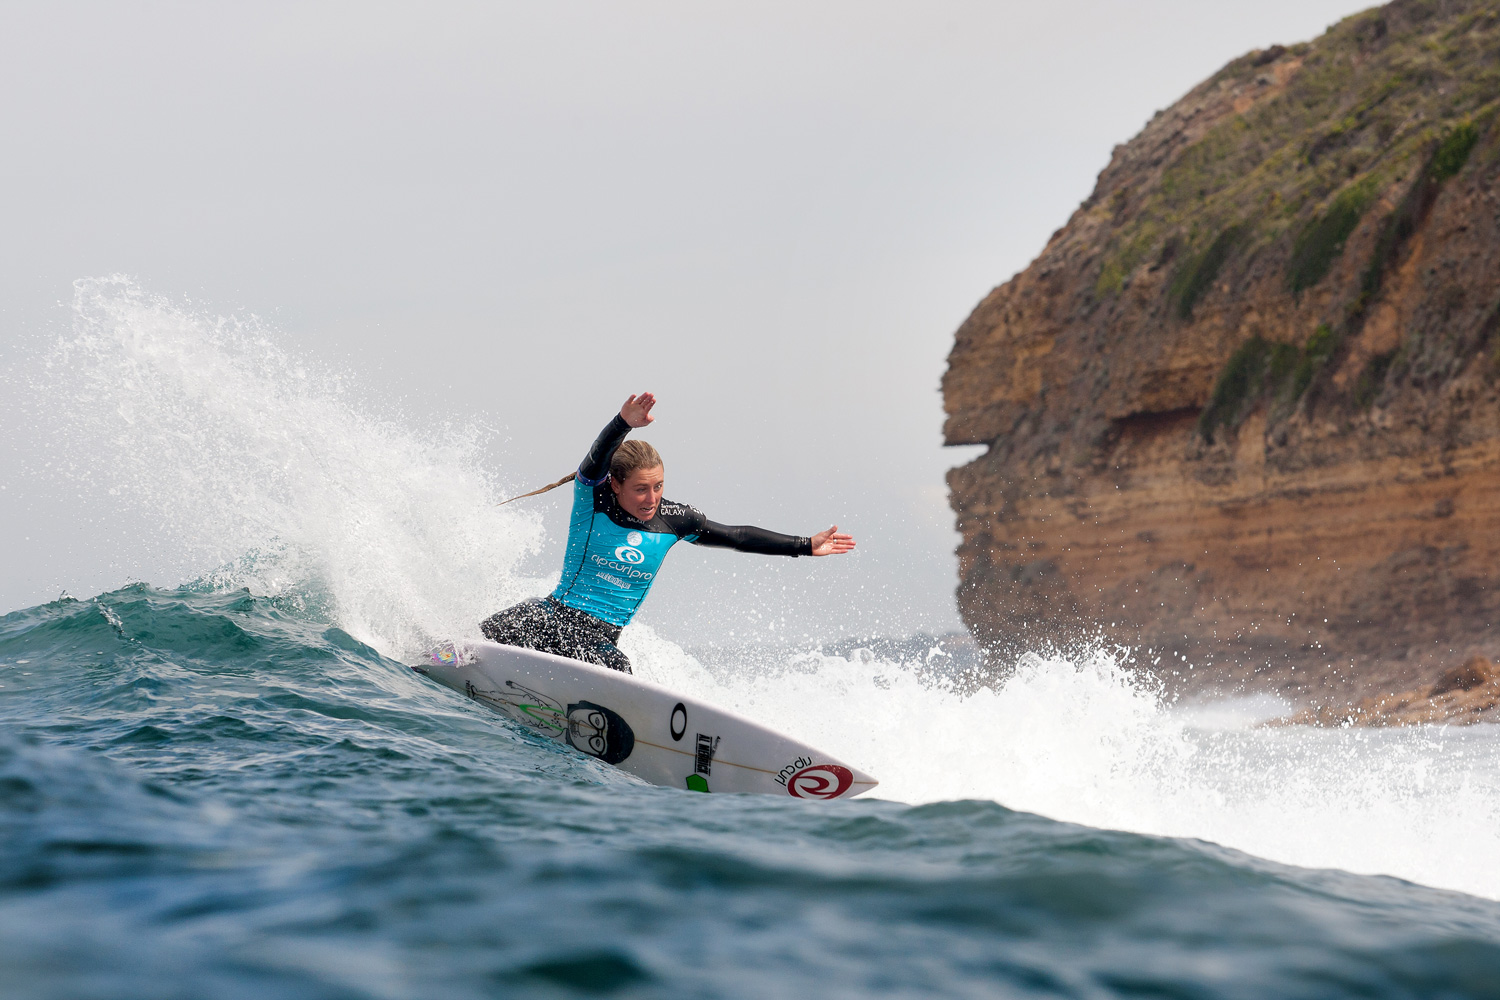 Nikki Van Dijk advances into Round 3 of the Rip Curl Pro Bells Beach on April 16, 2014 in Bells Beach, Australia.